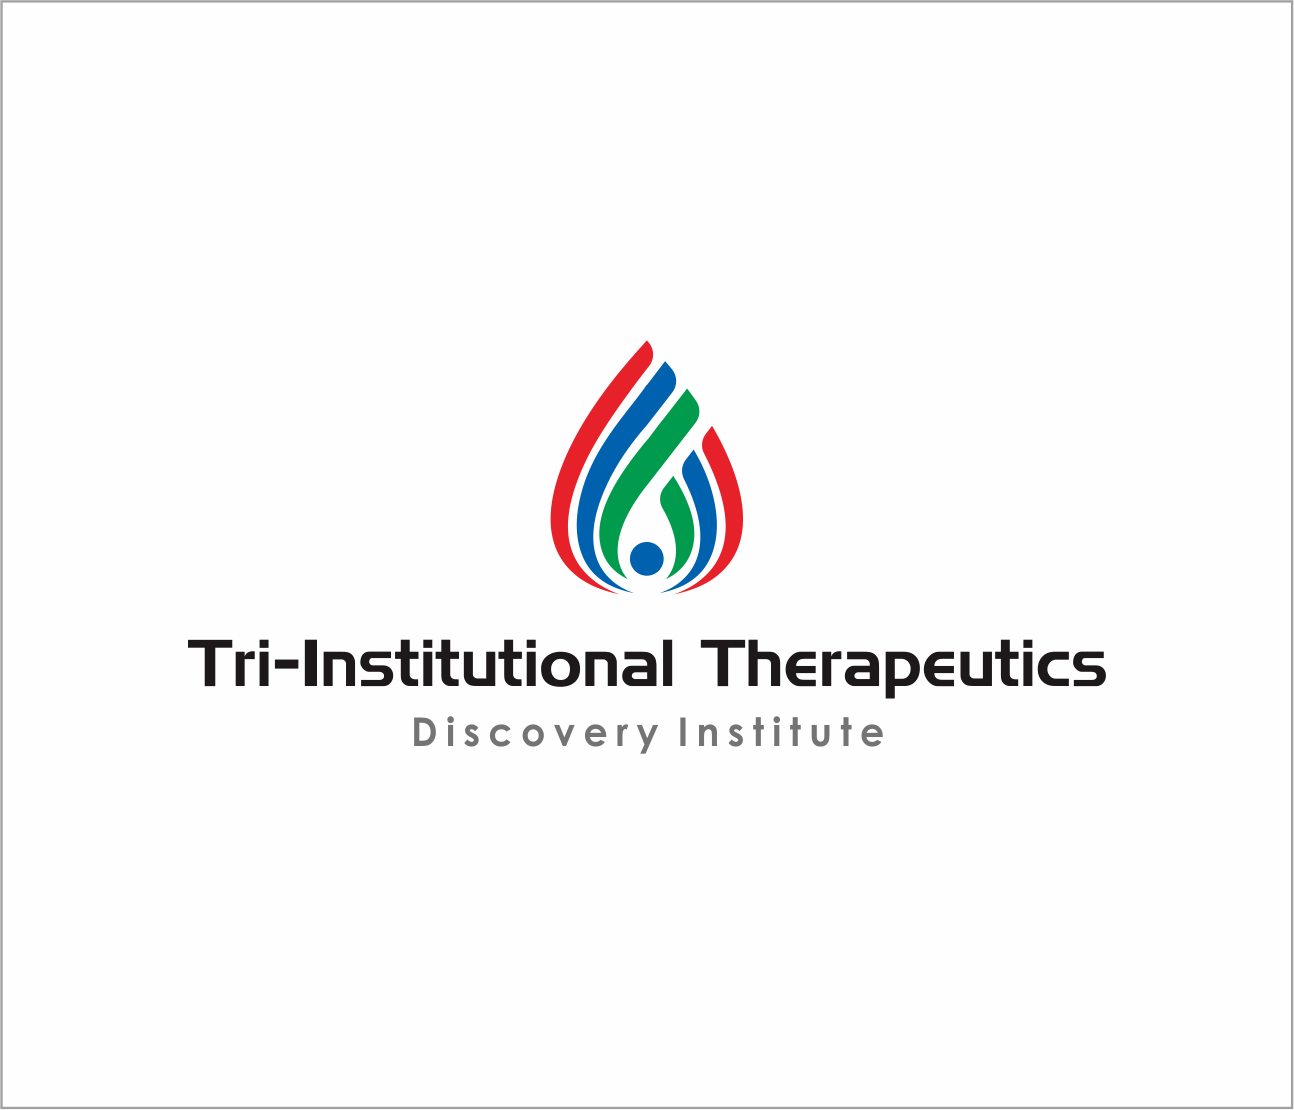 Logo Design by Armada Jamaluddin - Entry No. 63 in the Logo Design Contest Inspiring Logo Design for Tri-Institutional Therapeutics Discovery Institute.